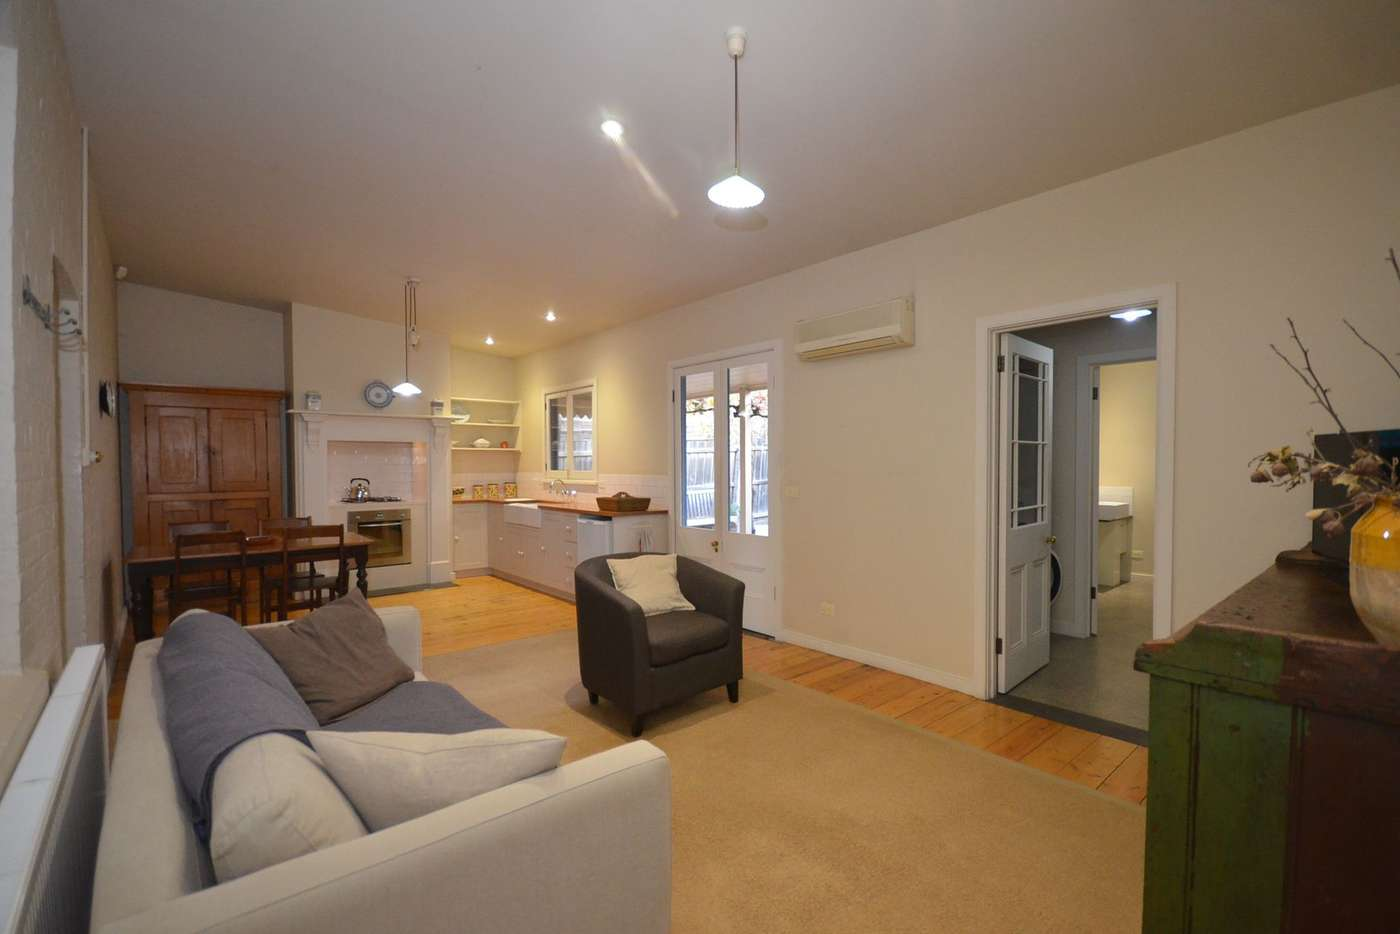 Main view of Homely house listing, 158 Mitchell Street, Bendigo VIC 3550